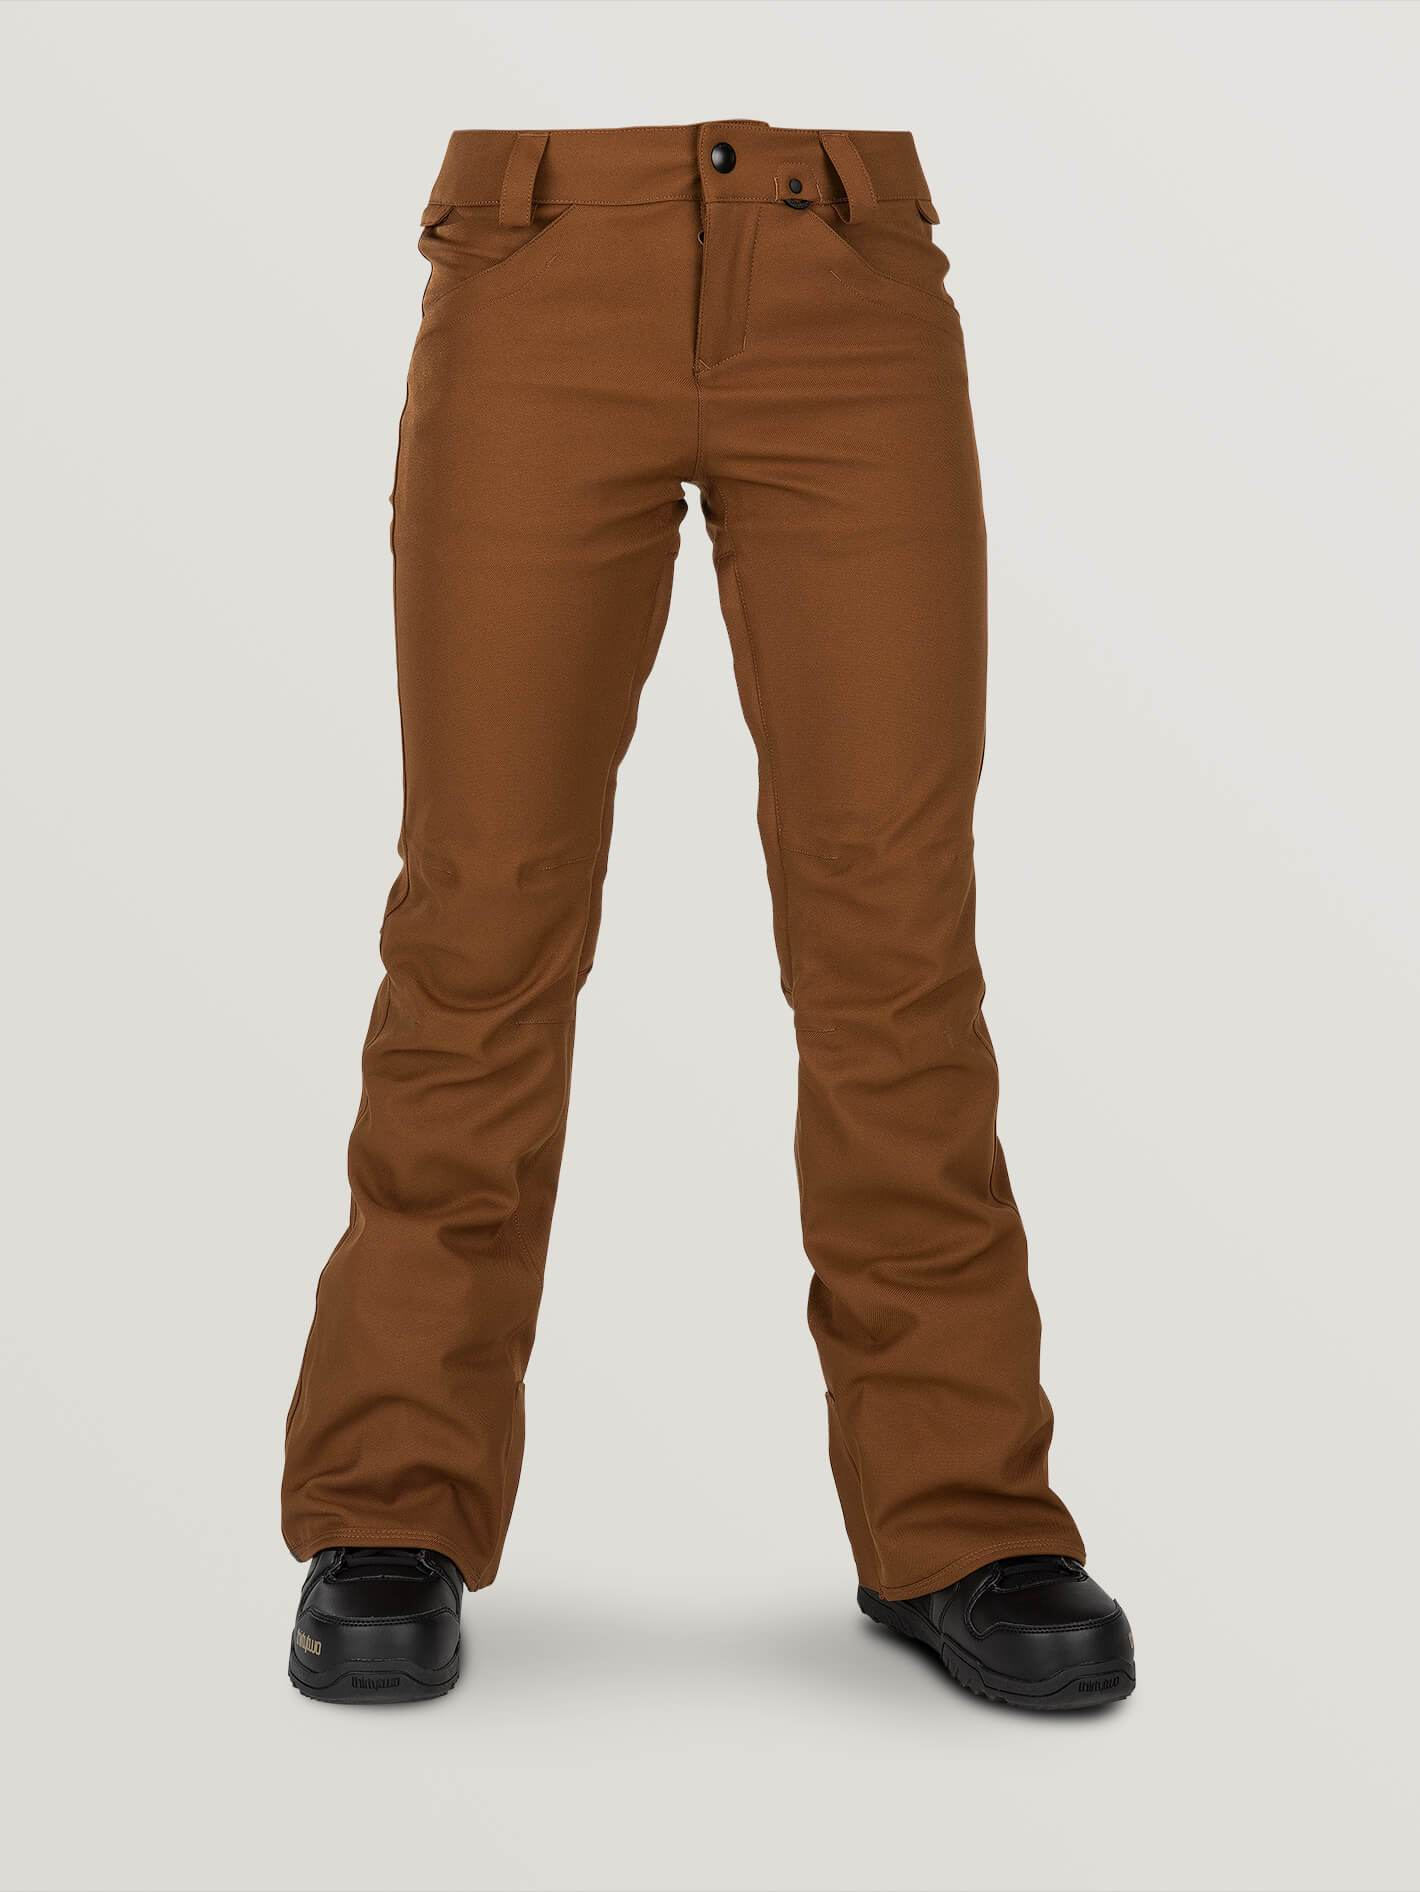 Volcom Species Stretch Snow Pants - 88 Gear